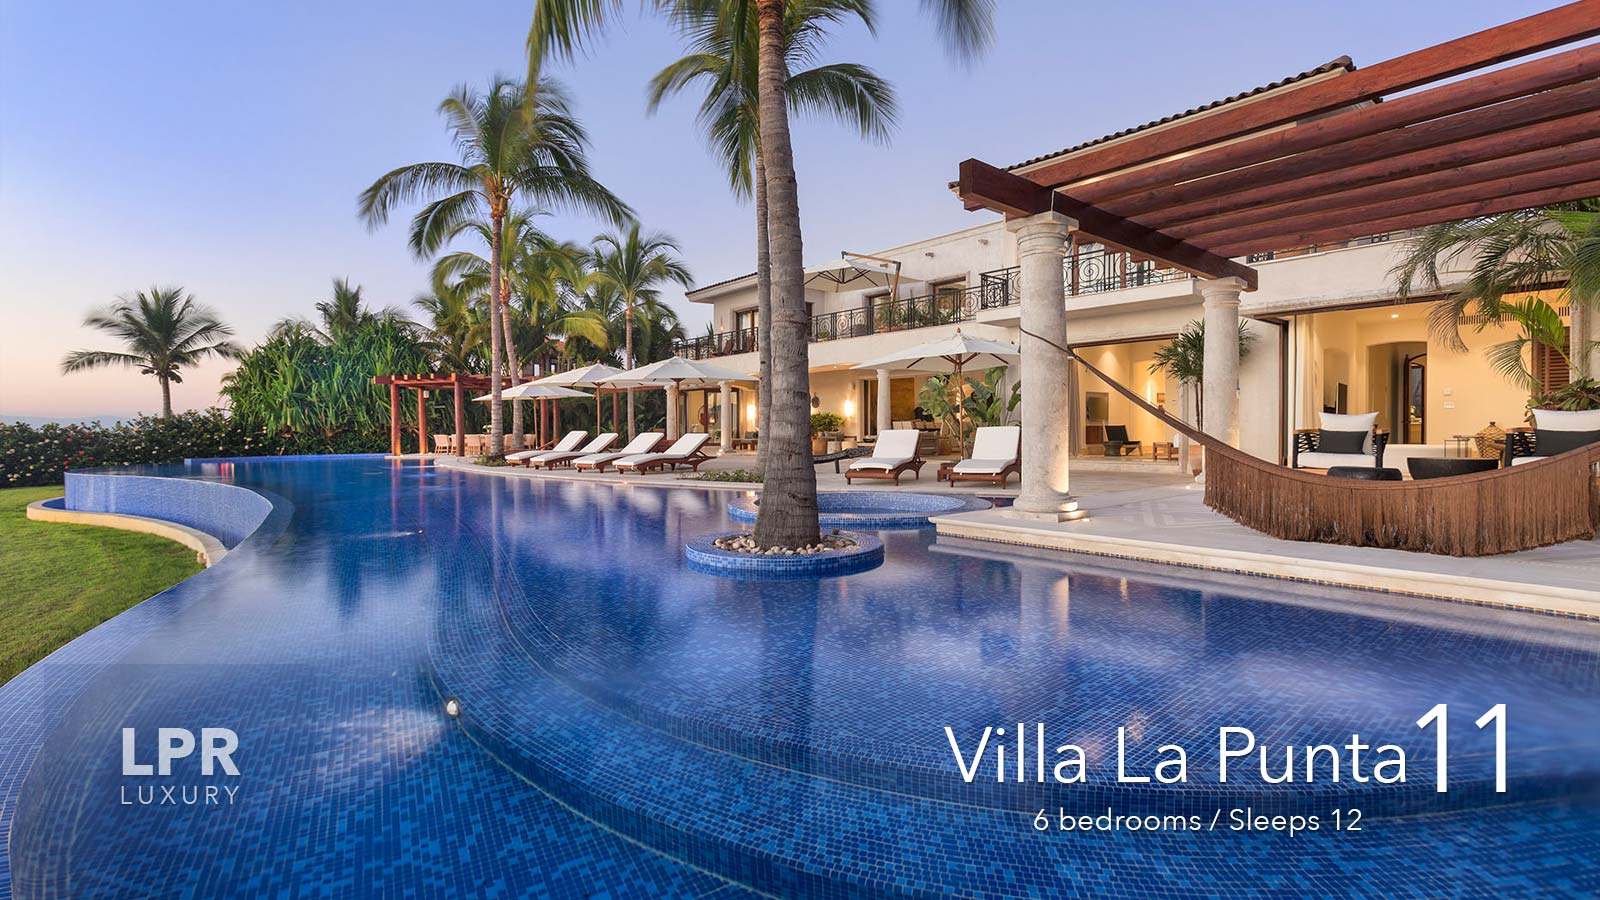 Villa La Punta 11 - Punta Mita Resort Luxury vacation rental villa